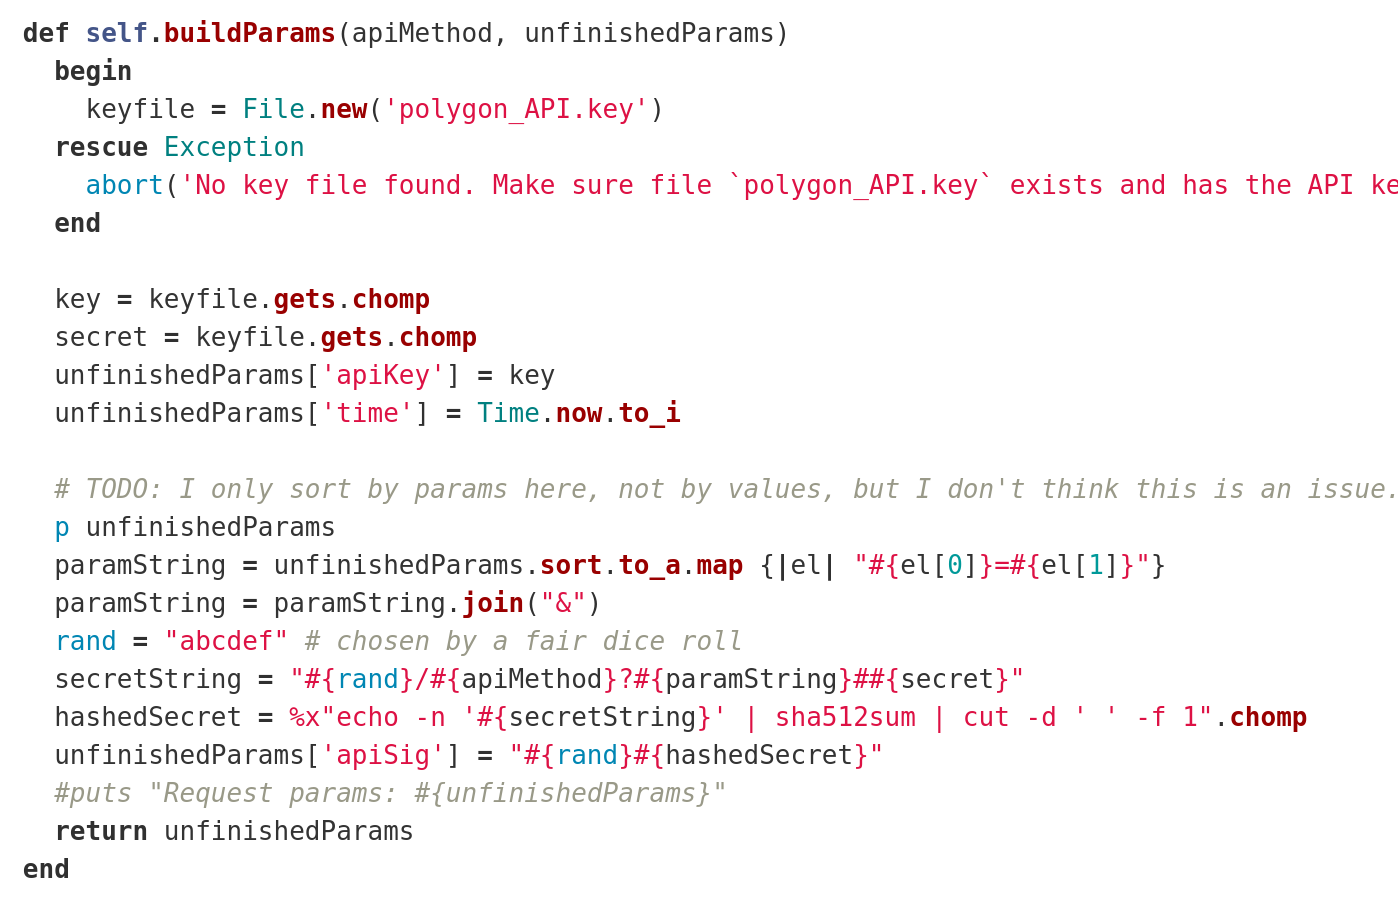 linux_toolkit_2021/images/polygon.png